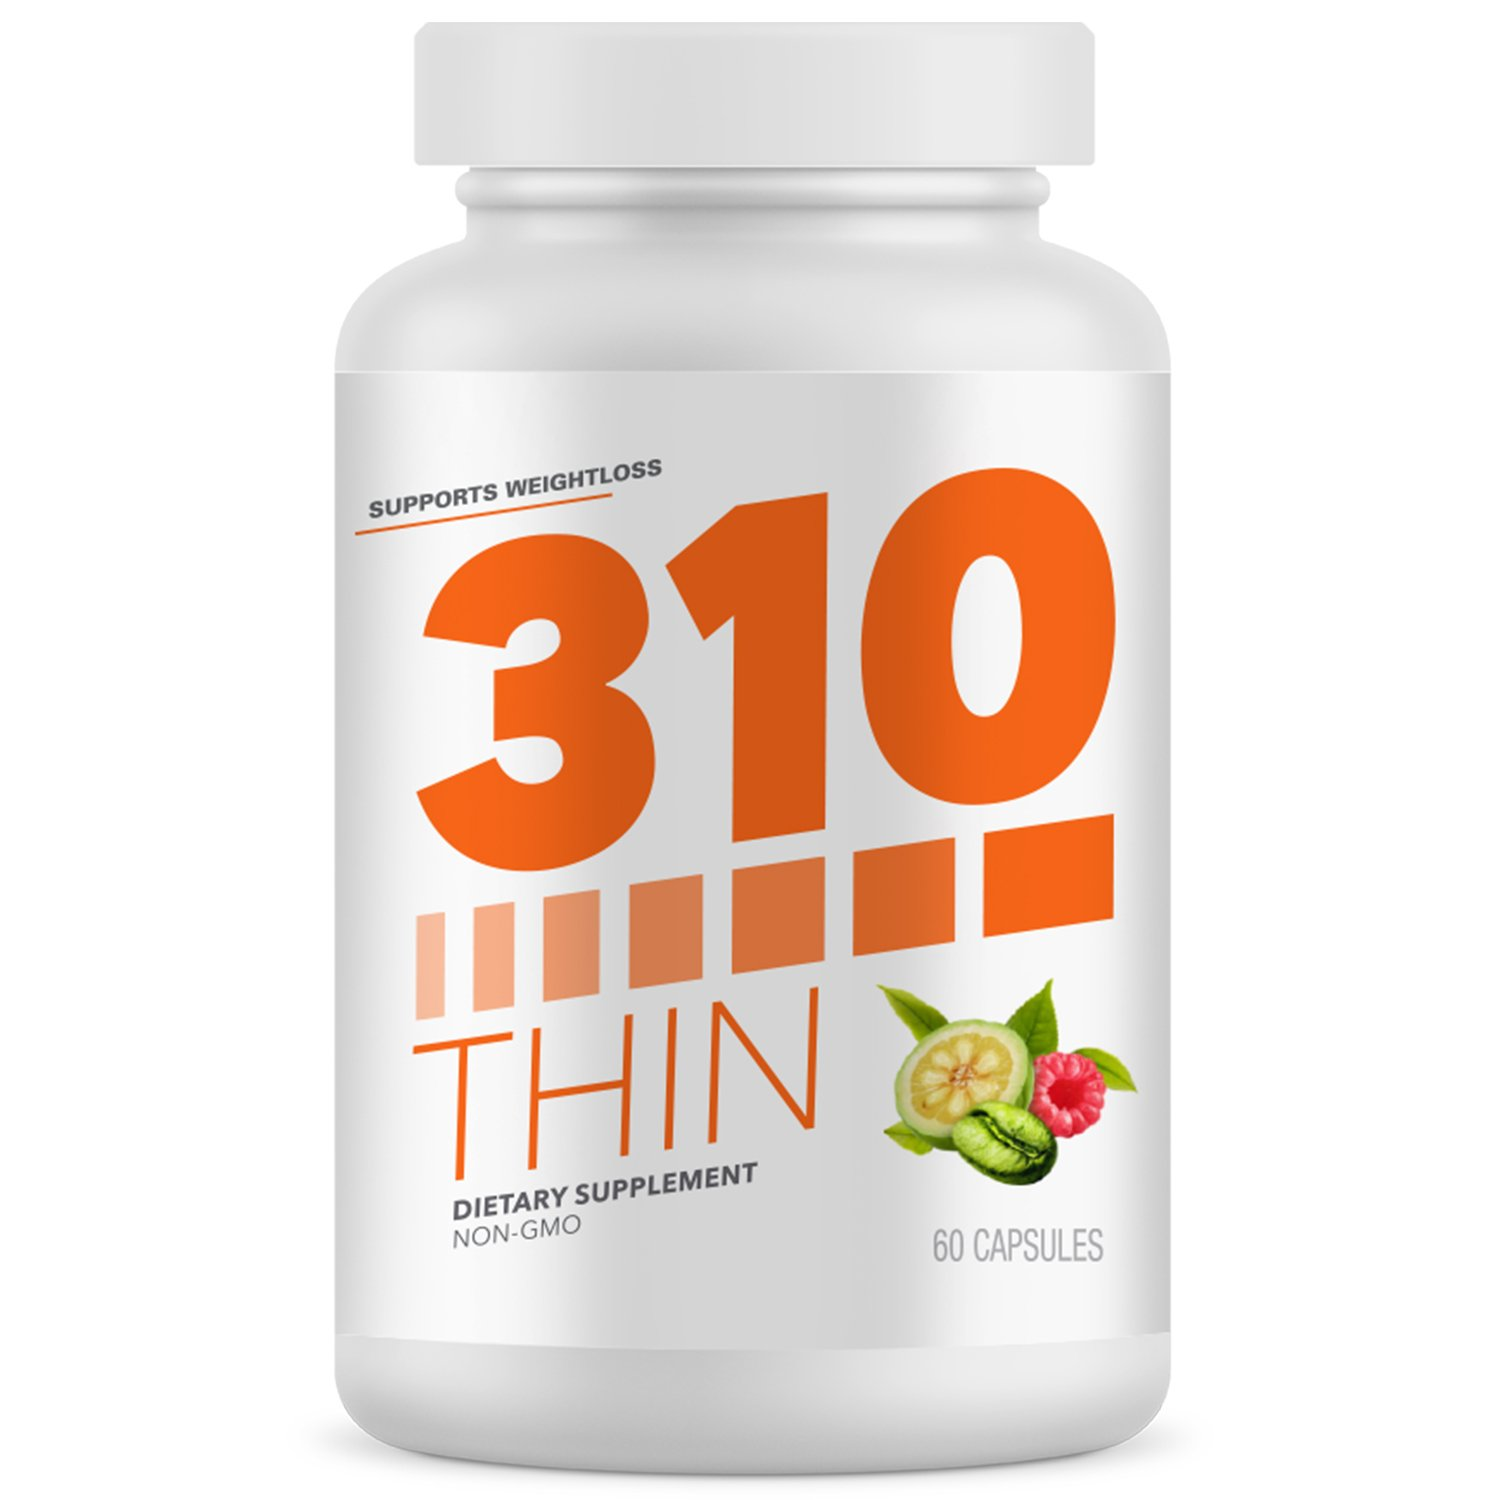 310 Thin Metabolism Booster with Garcinia Cambogia | Green Coffee and Ketones Extract | Crush Cravings and Boost Metabolism | Fight Hunger | Control Cravings | Enhance Energy